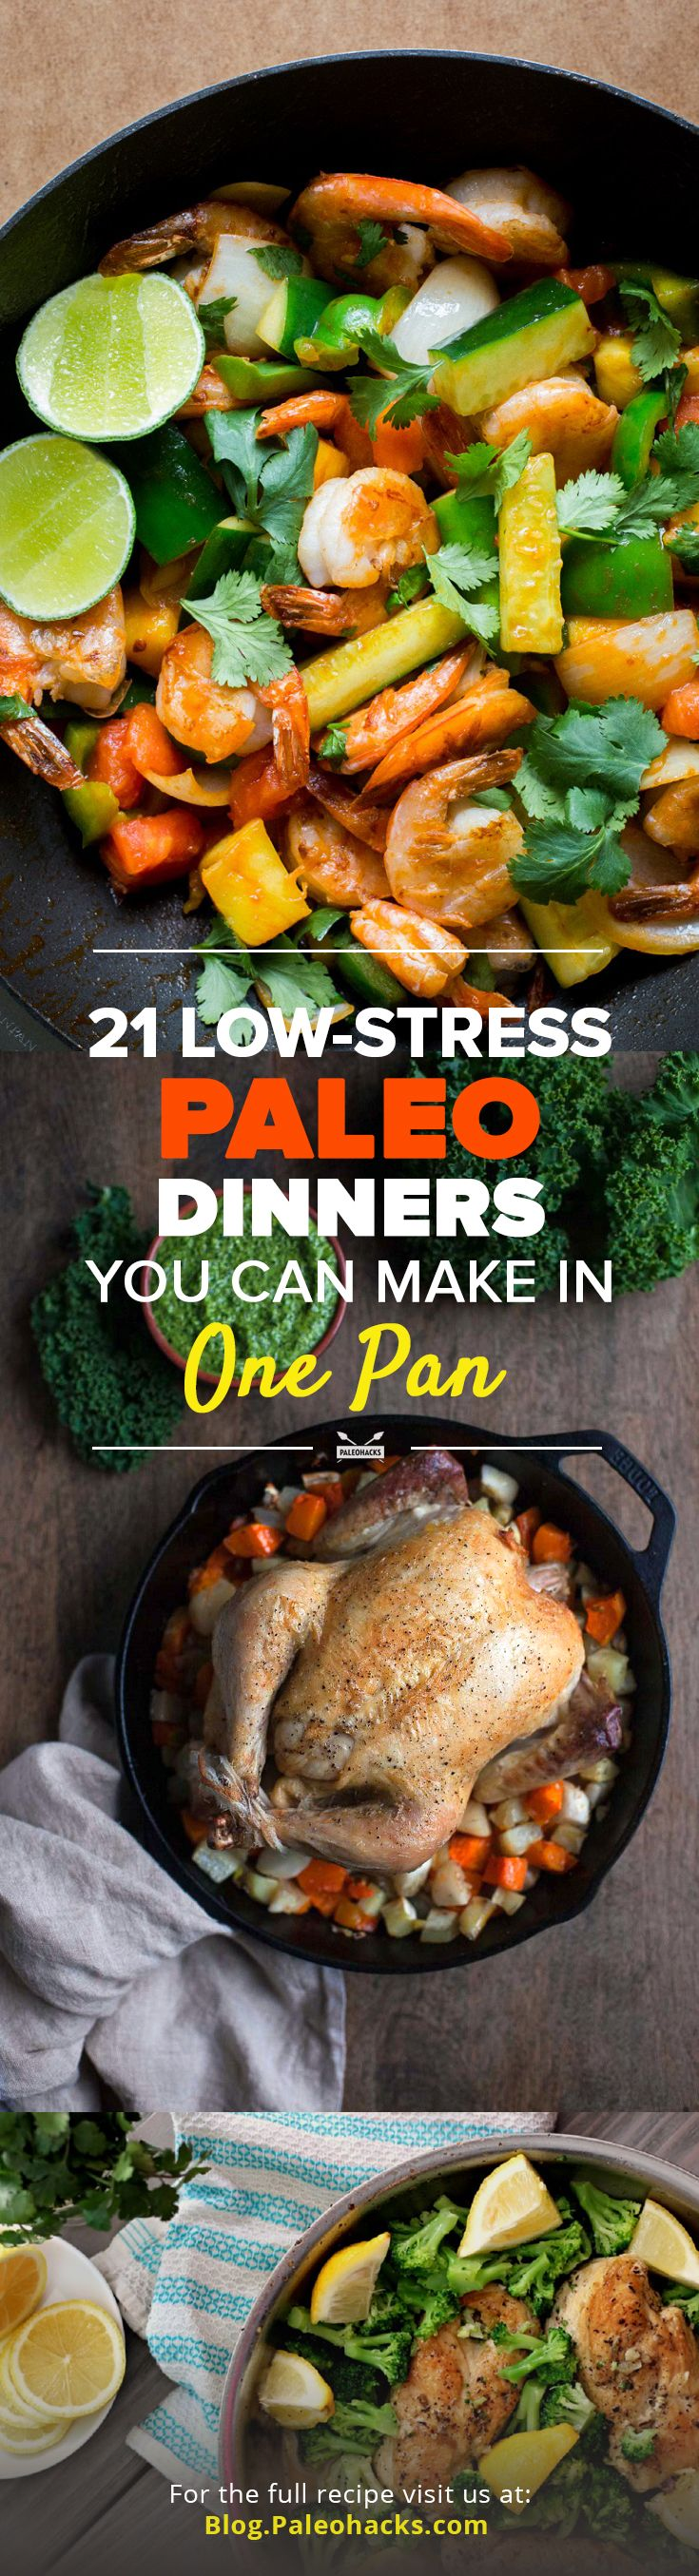 Looking for some low-stress weeknight dinners with lots of leftovers? These easy one-pot Paleo dinners will help you stay on track with your diet and simplify the cooking process. For the full recipes